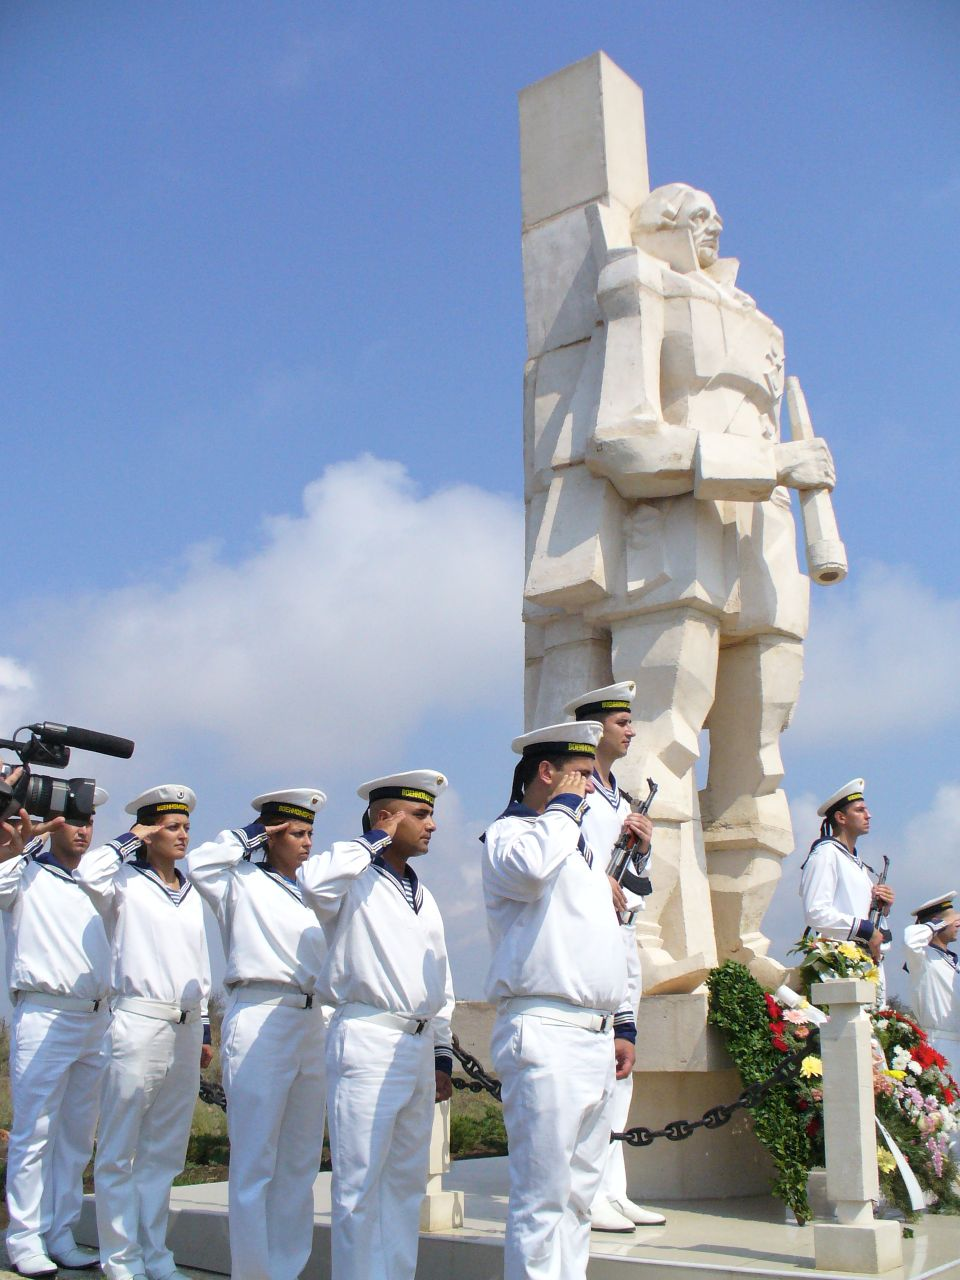 http://dic.academic.ru/pictures/wiki/files/85/Ushakov_Monument_Kavarna.JPG height=940 height=657